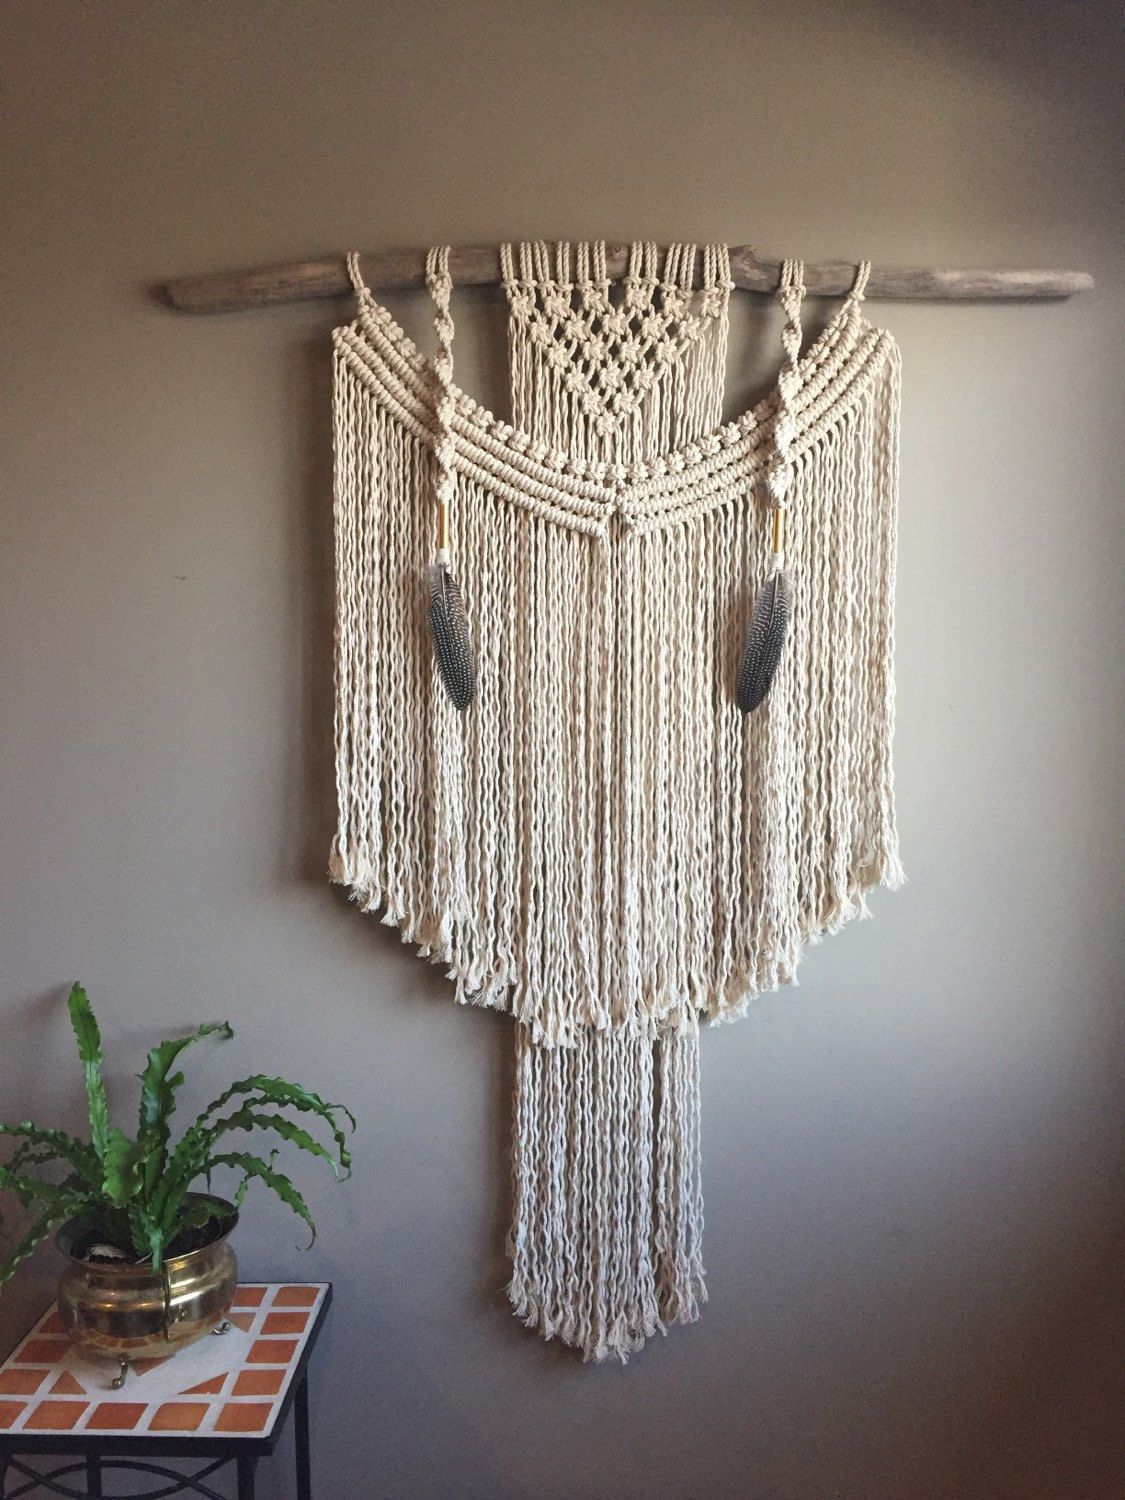 42 x large macramé wall hanging ooak driftwood feathers on large wall art id=52513